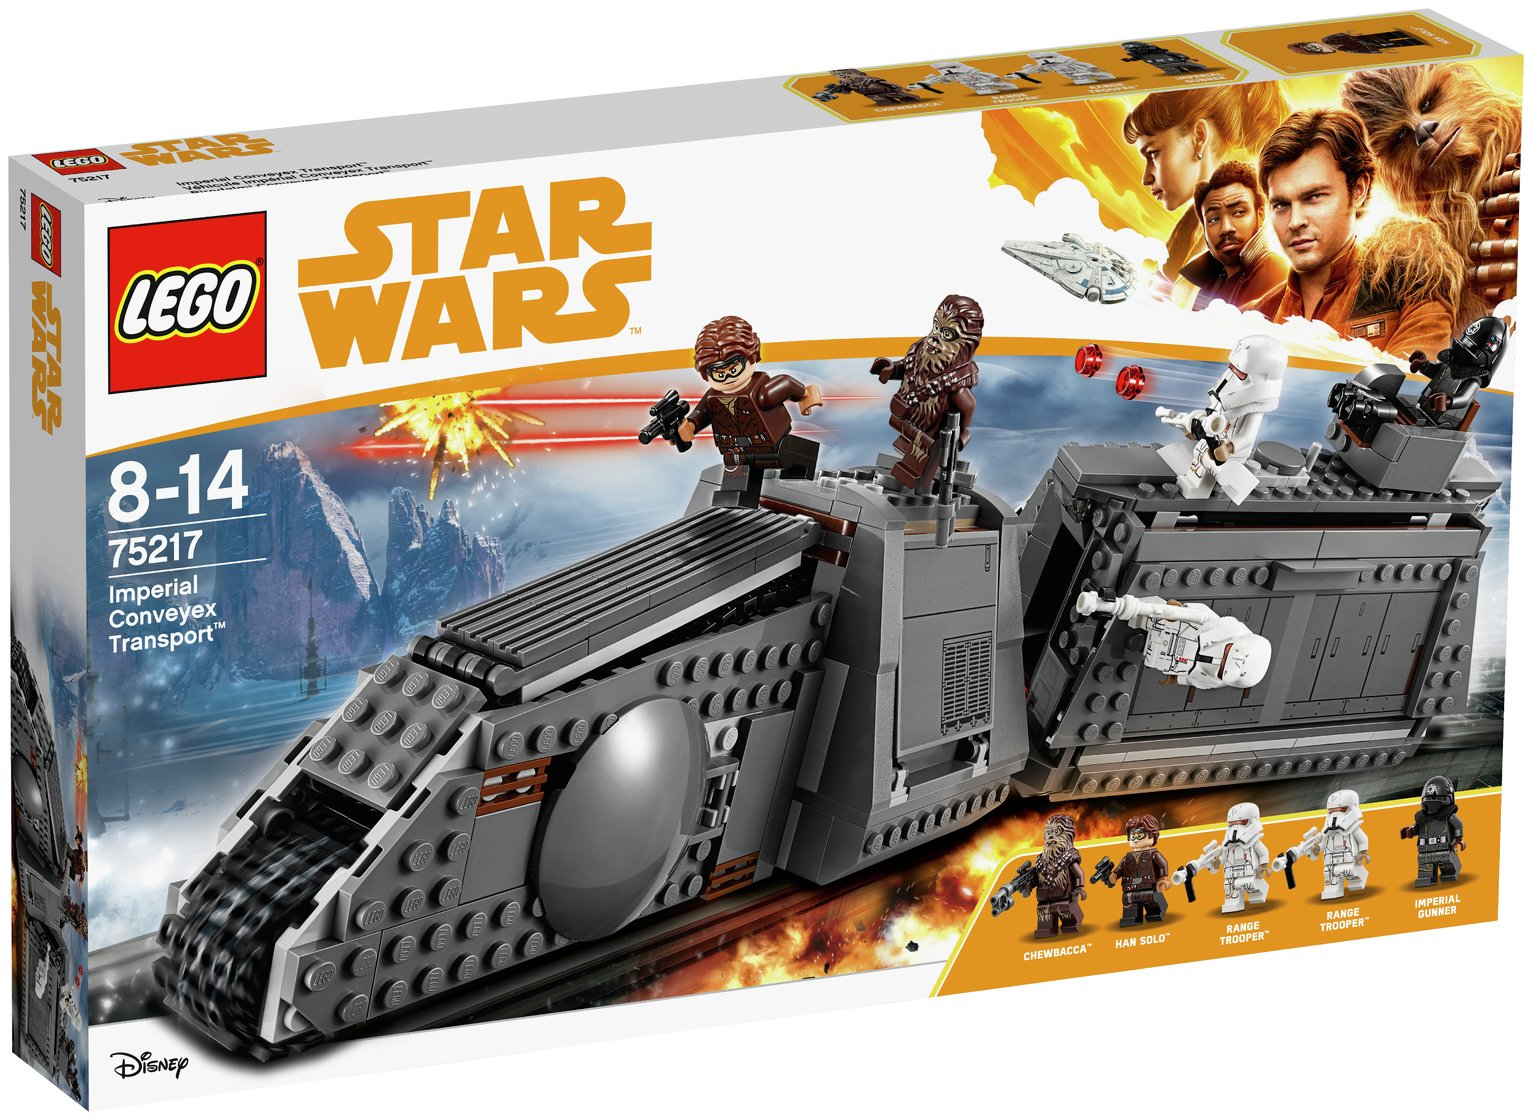 LEGO Star Wars Imperial Conveyex Transport - 75217